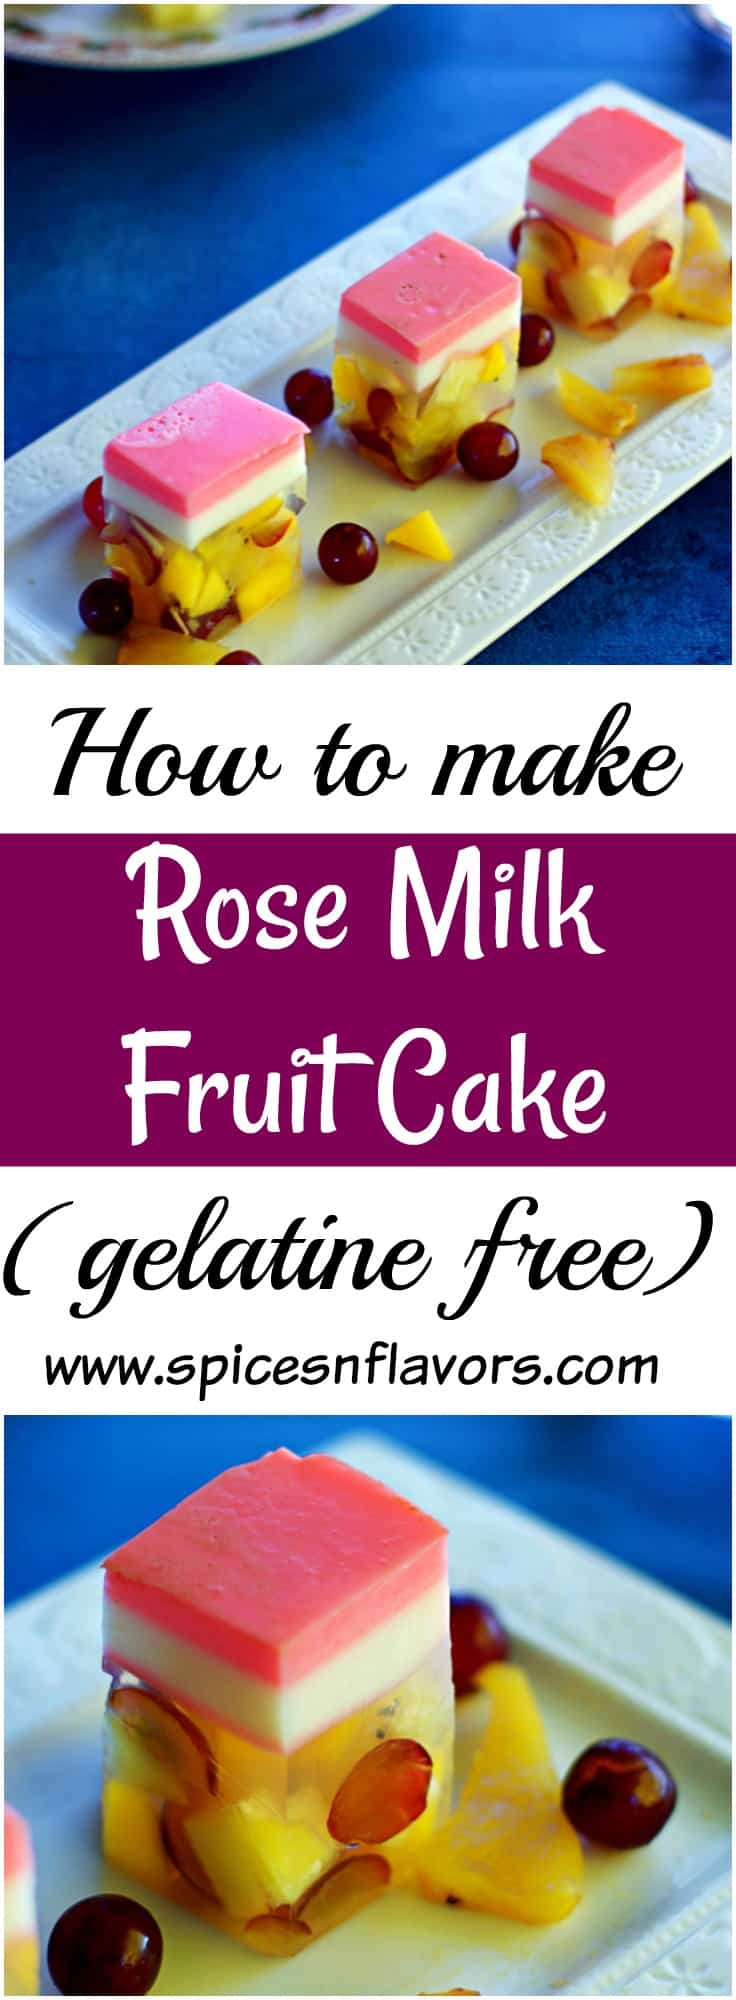 Rose Milk Fruit Cake Agar Agar Fruit Cake Learn how to use agar agar no gelatine recipe vegetarian recipe